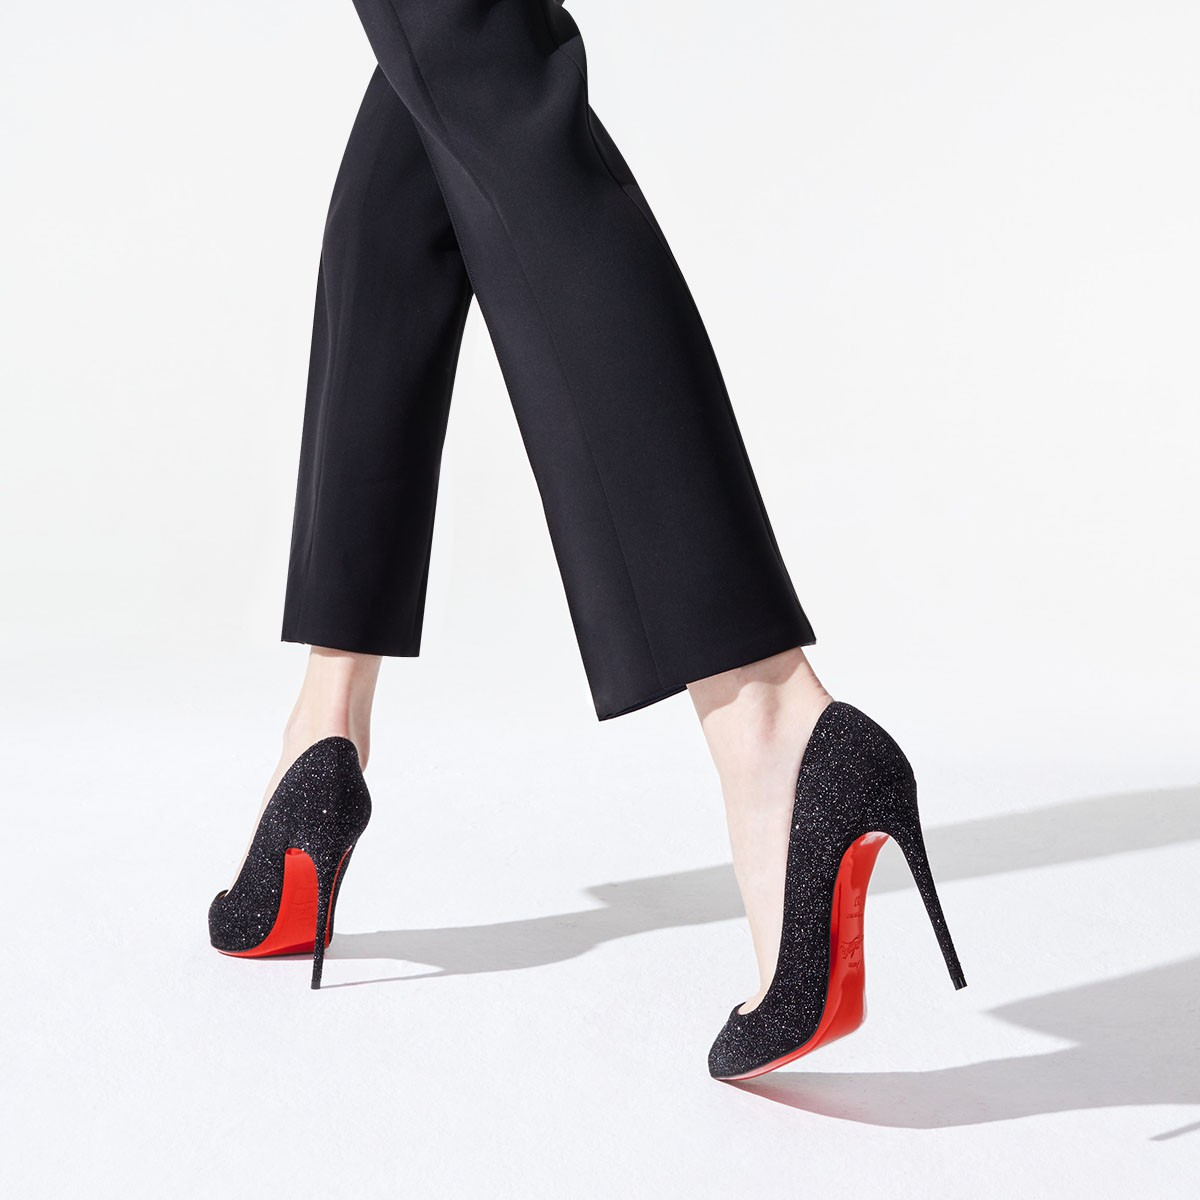 Souliers - Pigalle Follies - Christian Louboutin